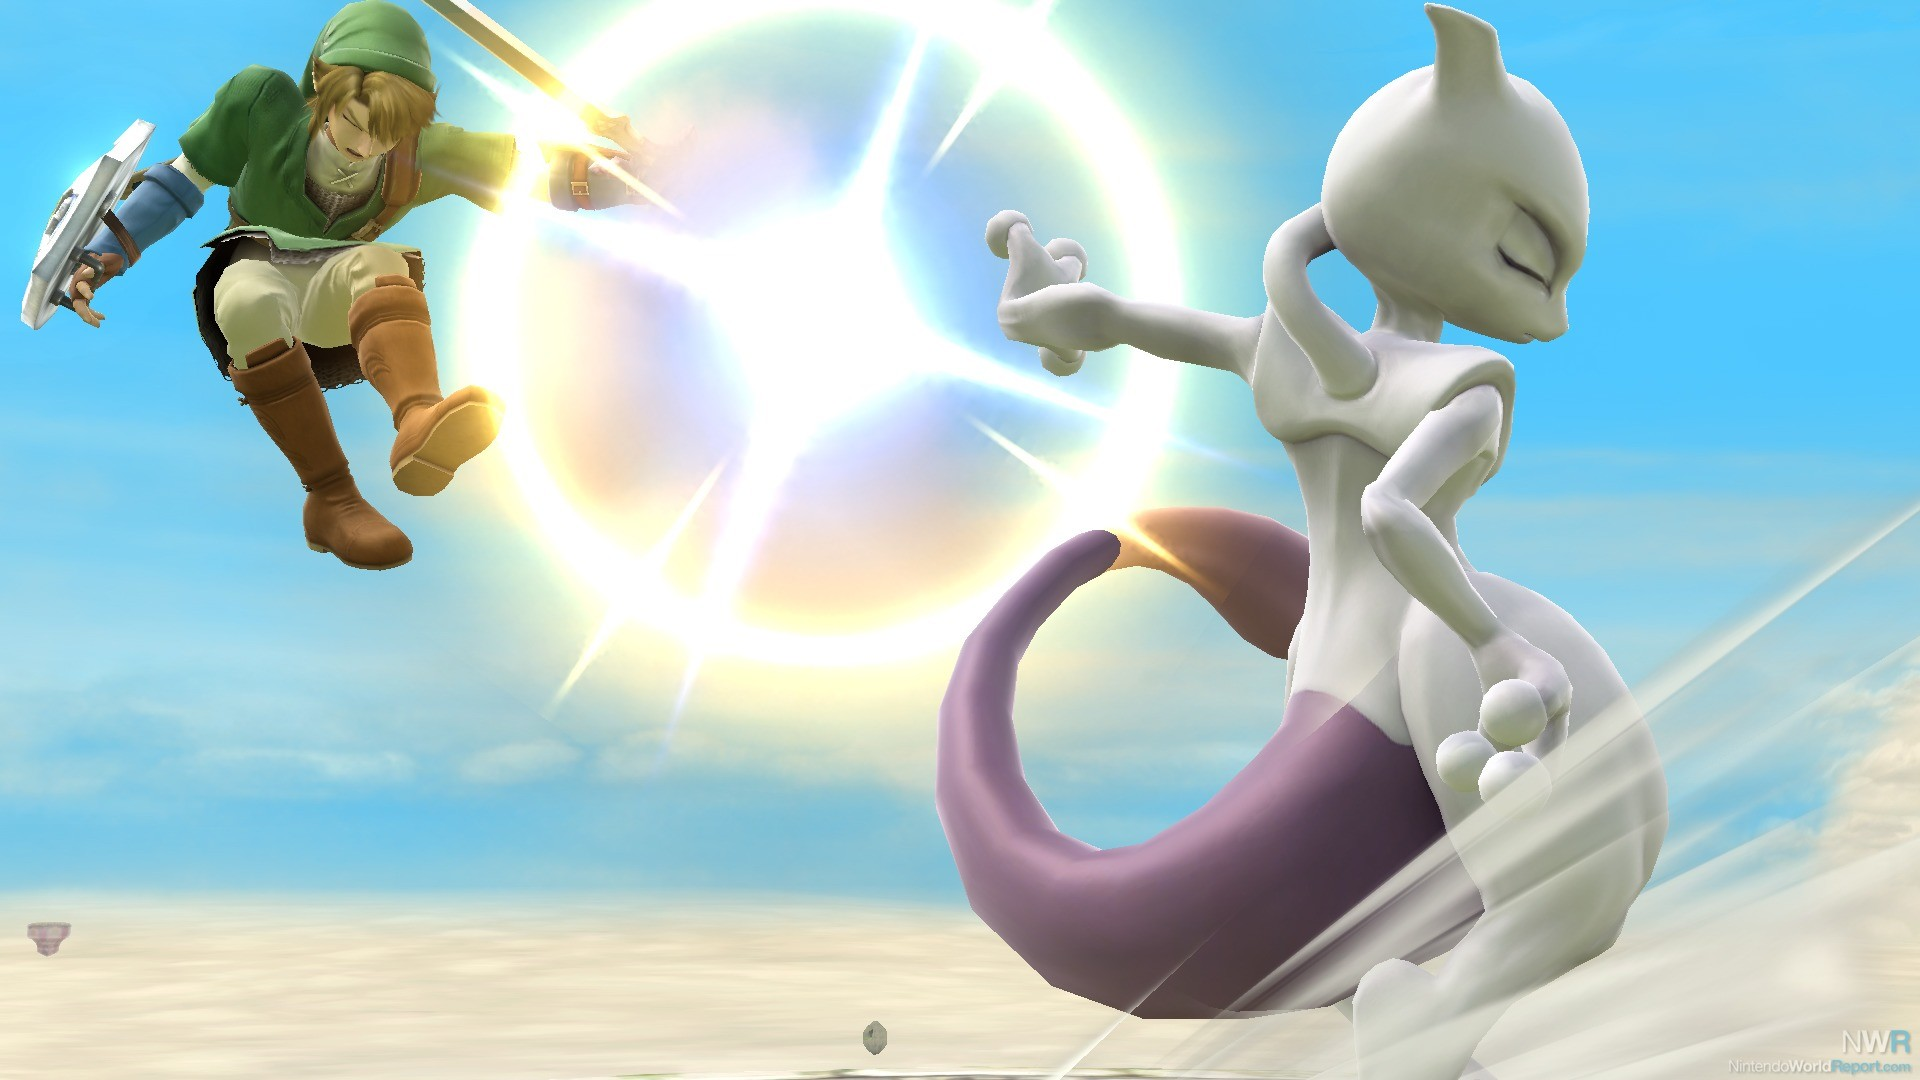 Smash Bros Updates Now Live, Club Nintendo Mewtwo Codes Being Distributed –  News – Nintendo World Report